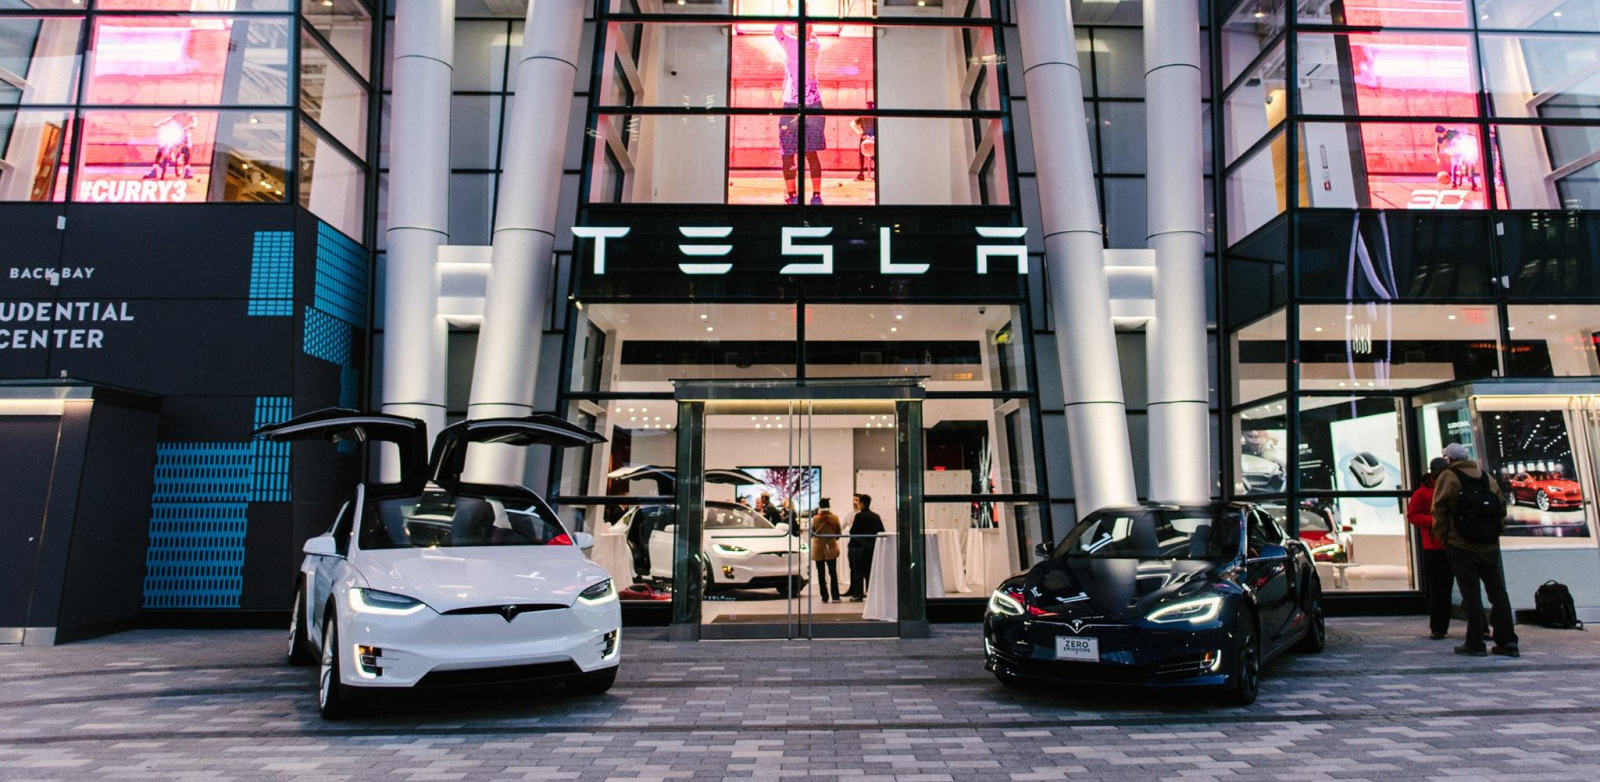 Tesla gets sued by car dealers afraid to compete with them